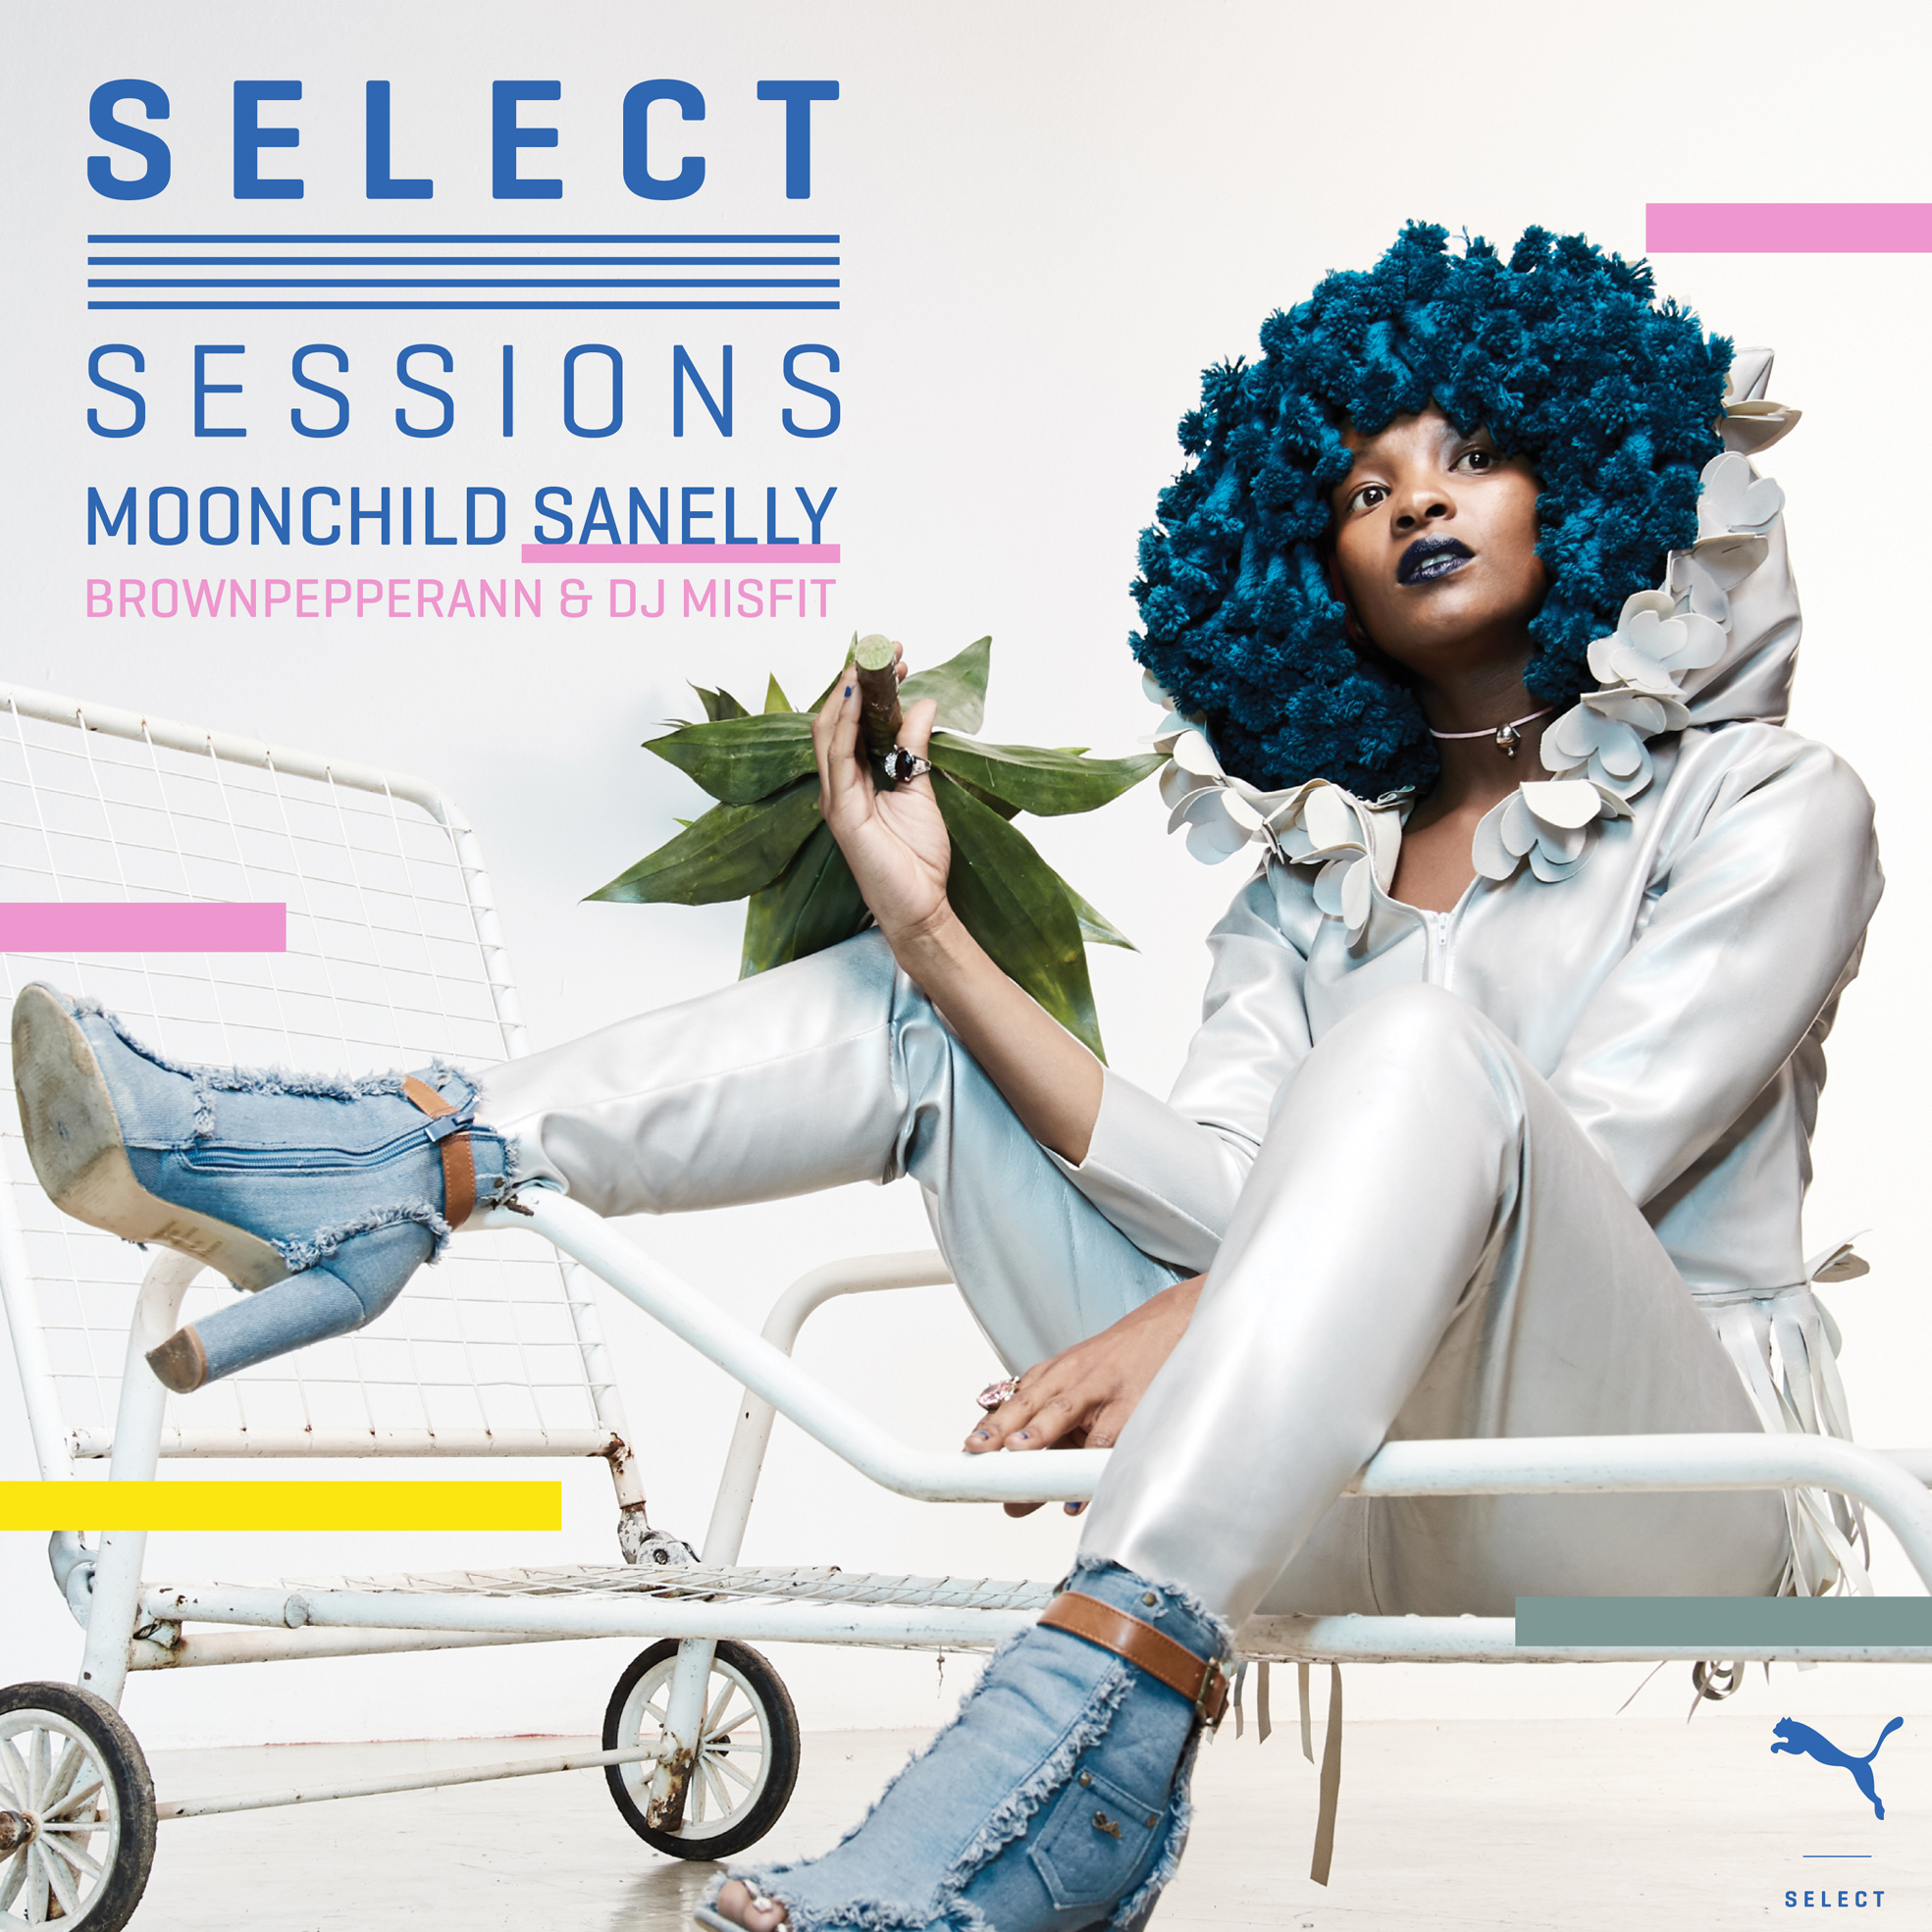 Moonchild Sanelly headlines for PUMA SELECT x SESSIONS this First Thursday, 2nd August